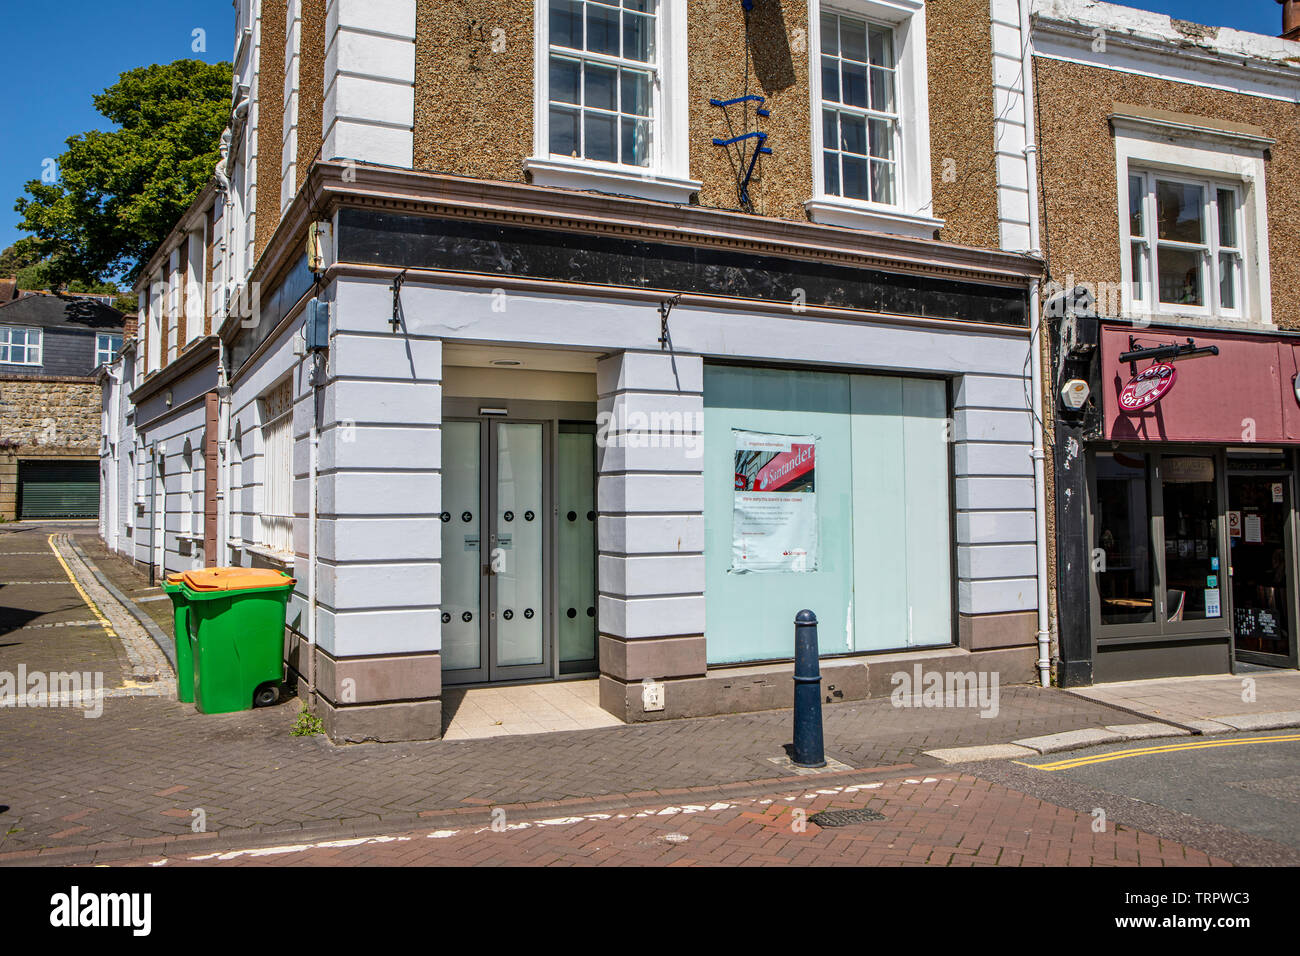 A closed Santander bank in Hythe High Street, Kent. - Stock Image